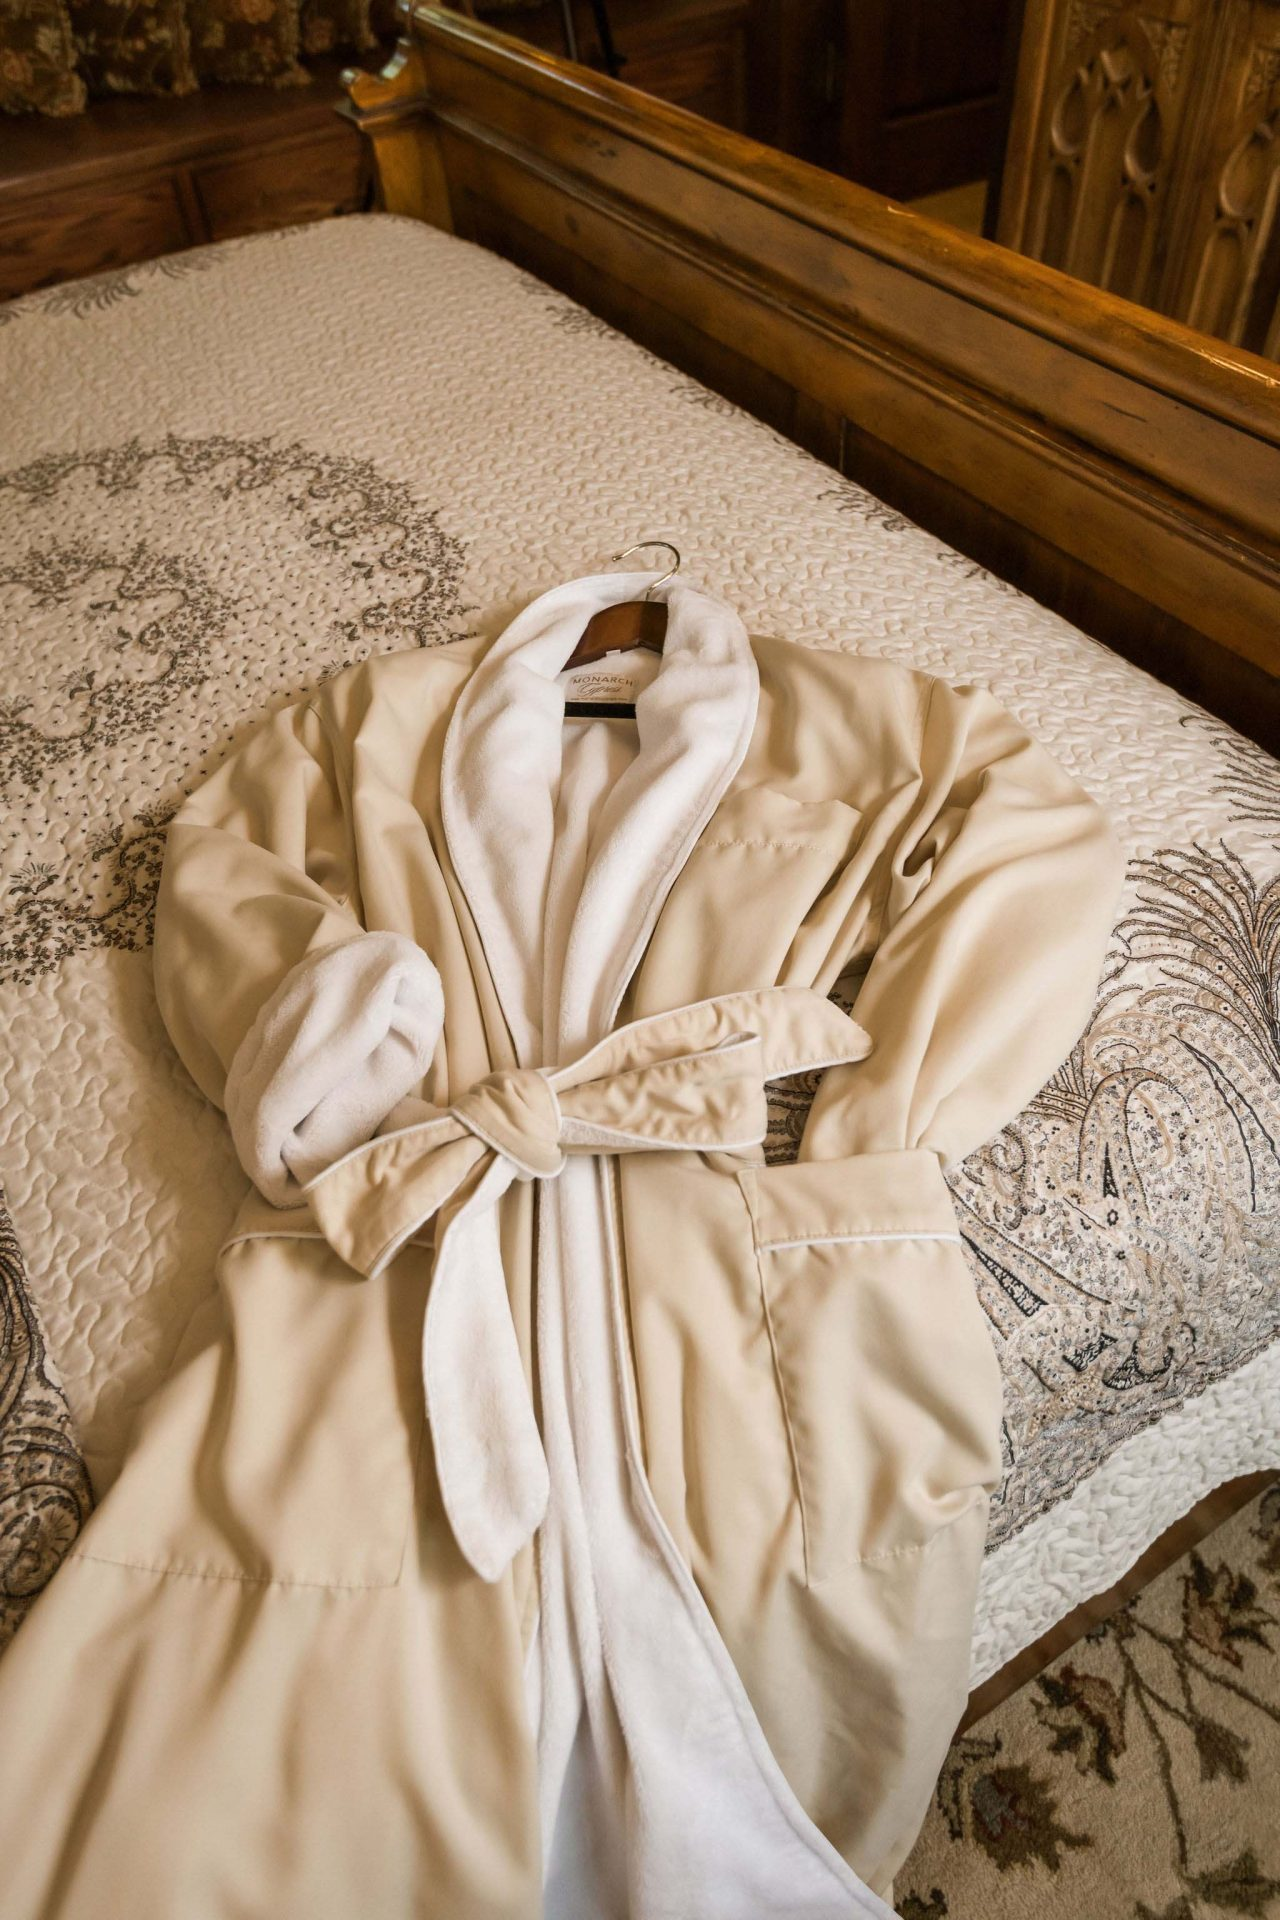 A warm, beige bathrobe lying on the bed in one of the bnb rooms.